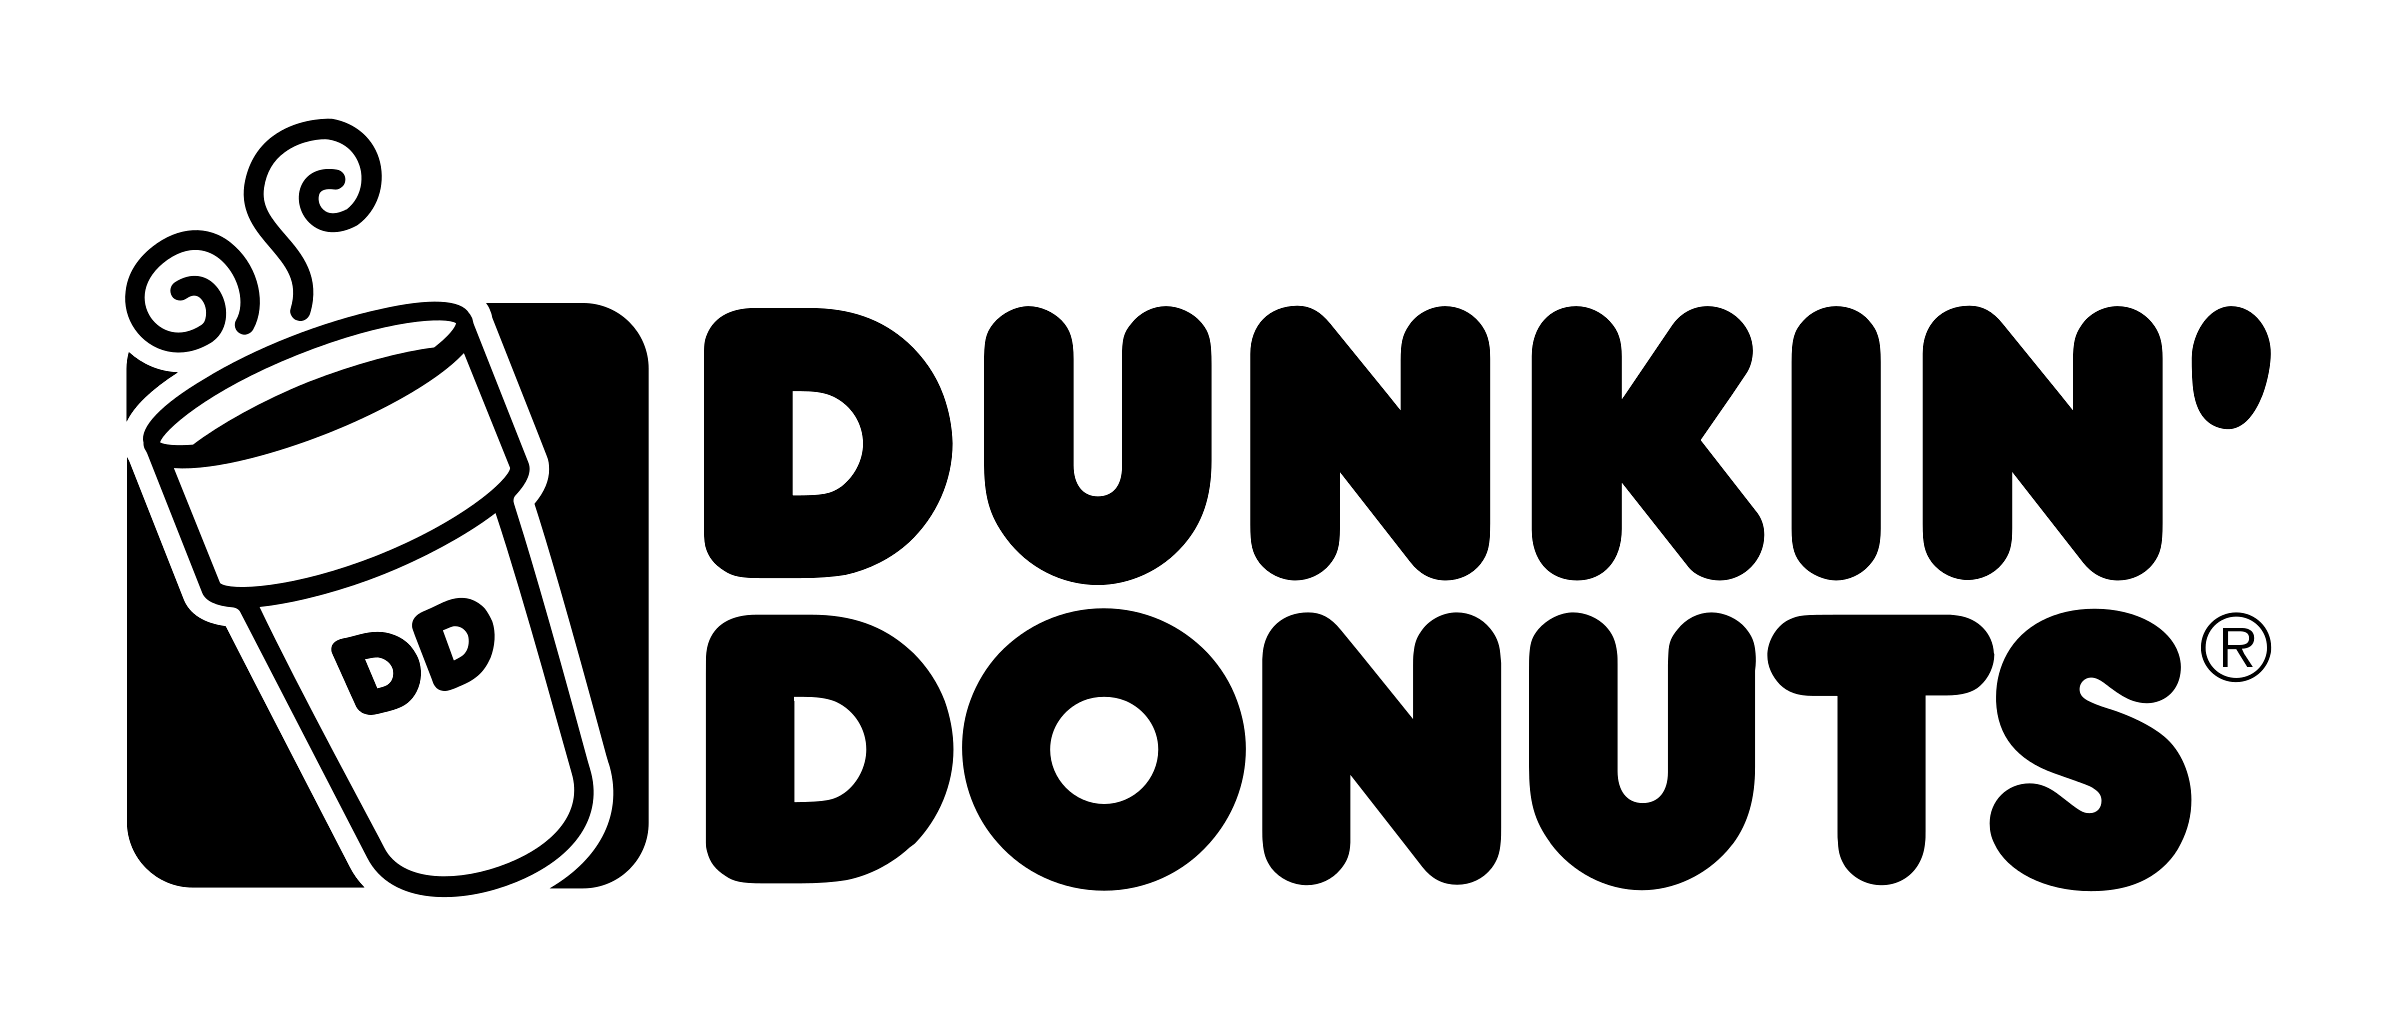 dunkin-donuts-logo-black-and-white.png